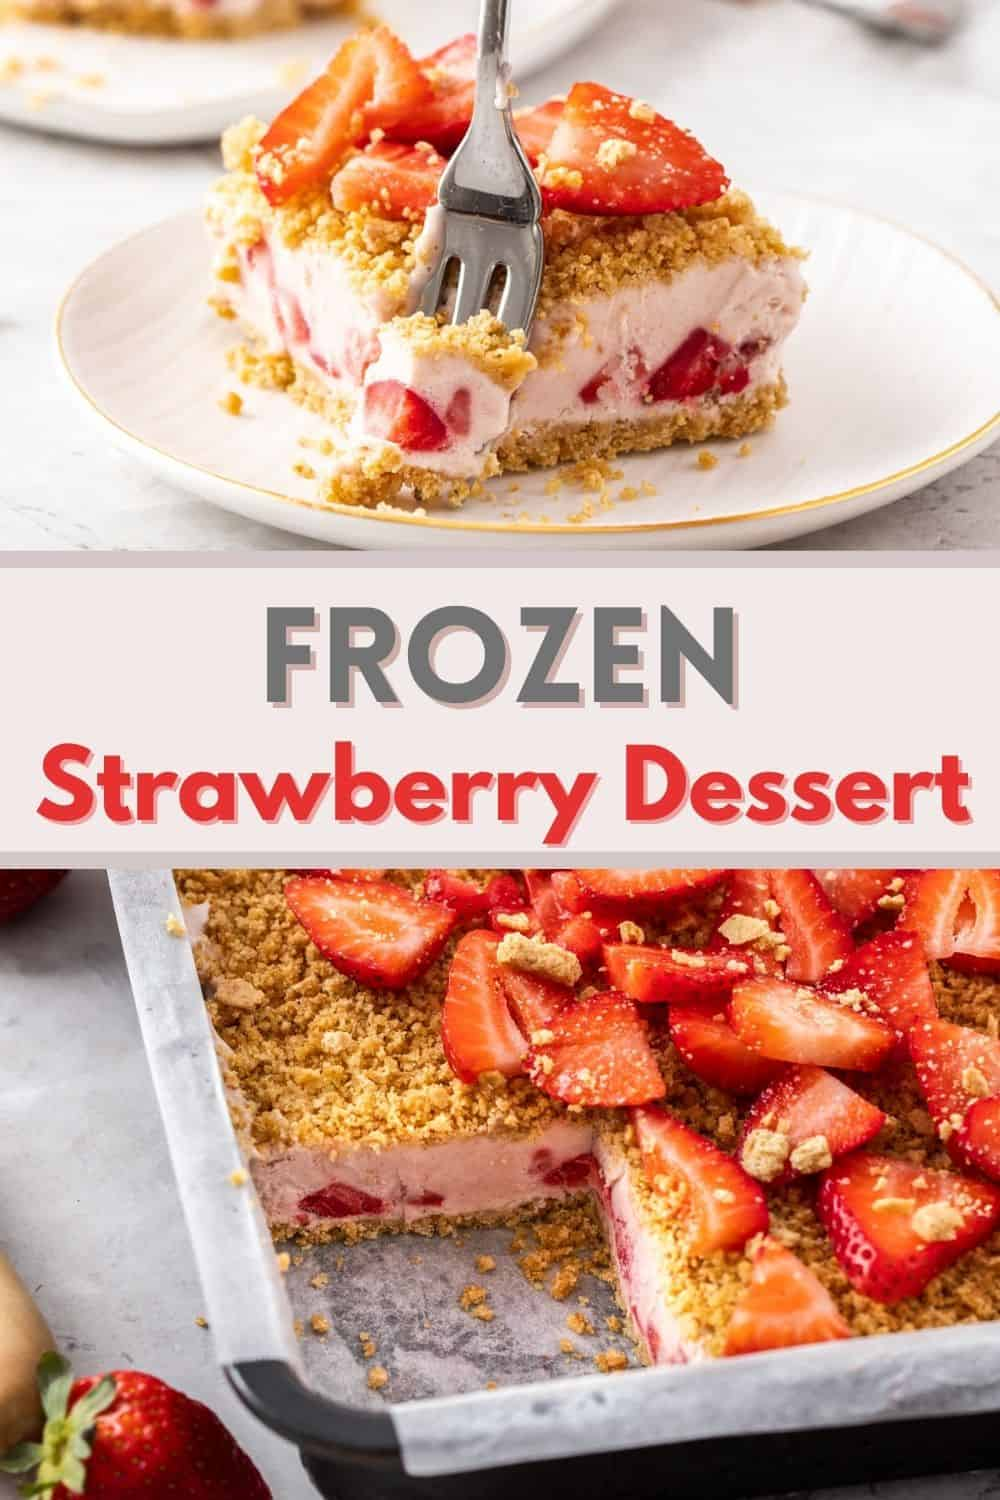 An easy strawberry dessert with top and bottom layers of graham cracker crumbs. If you love strawberries and cream, you will love this frozen dessert!